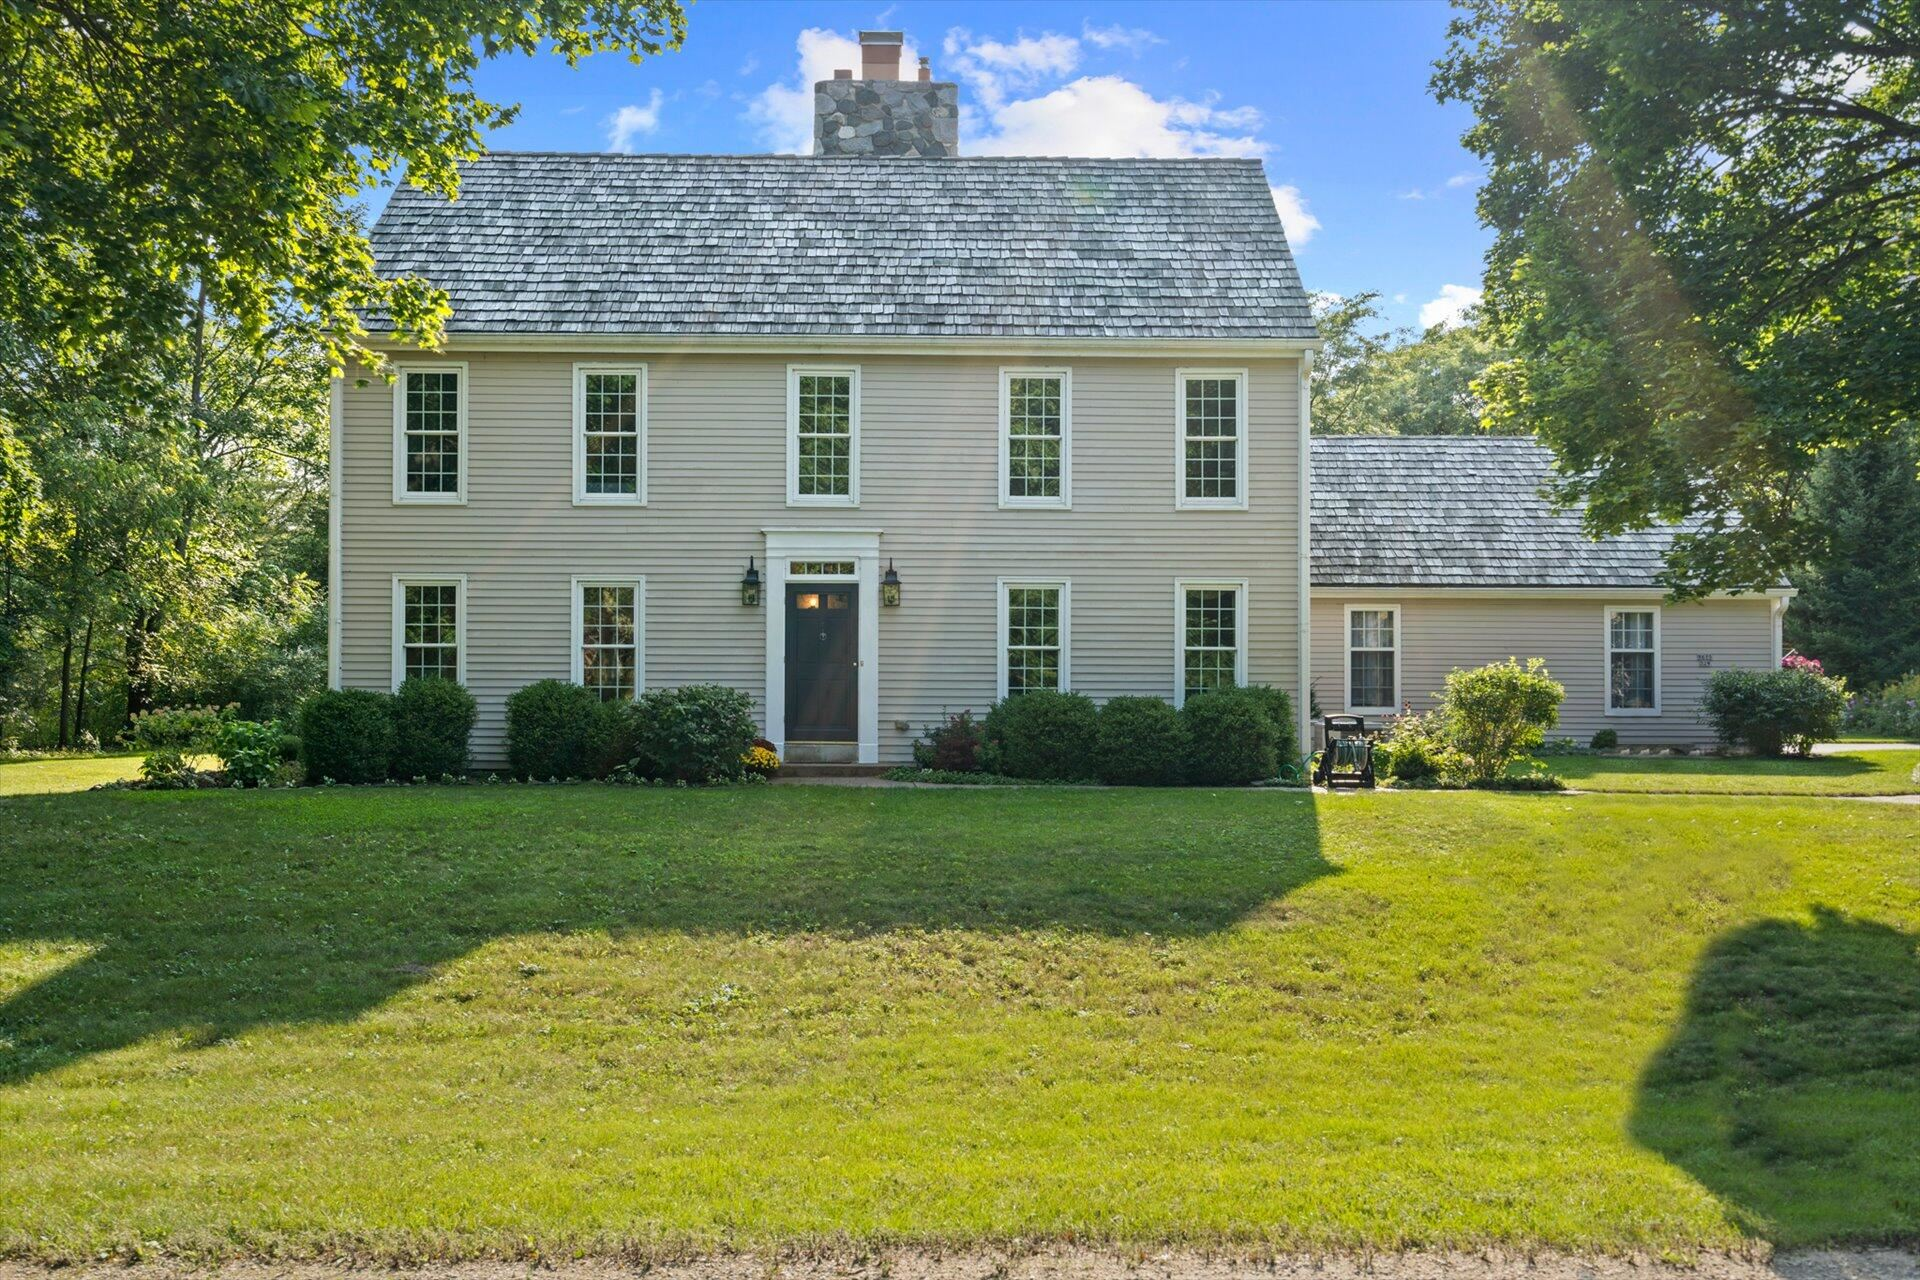 9615 N Valley Hill Dr, Mequon, WI 53092 - MLS#: 1762112